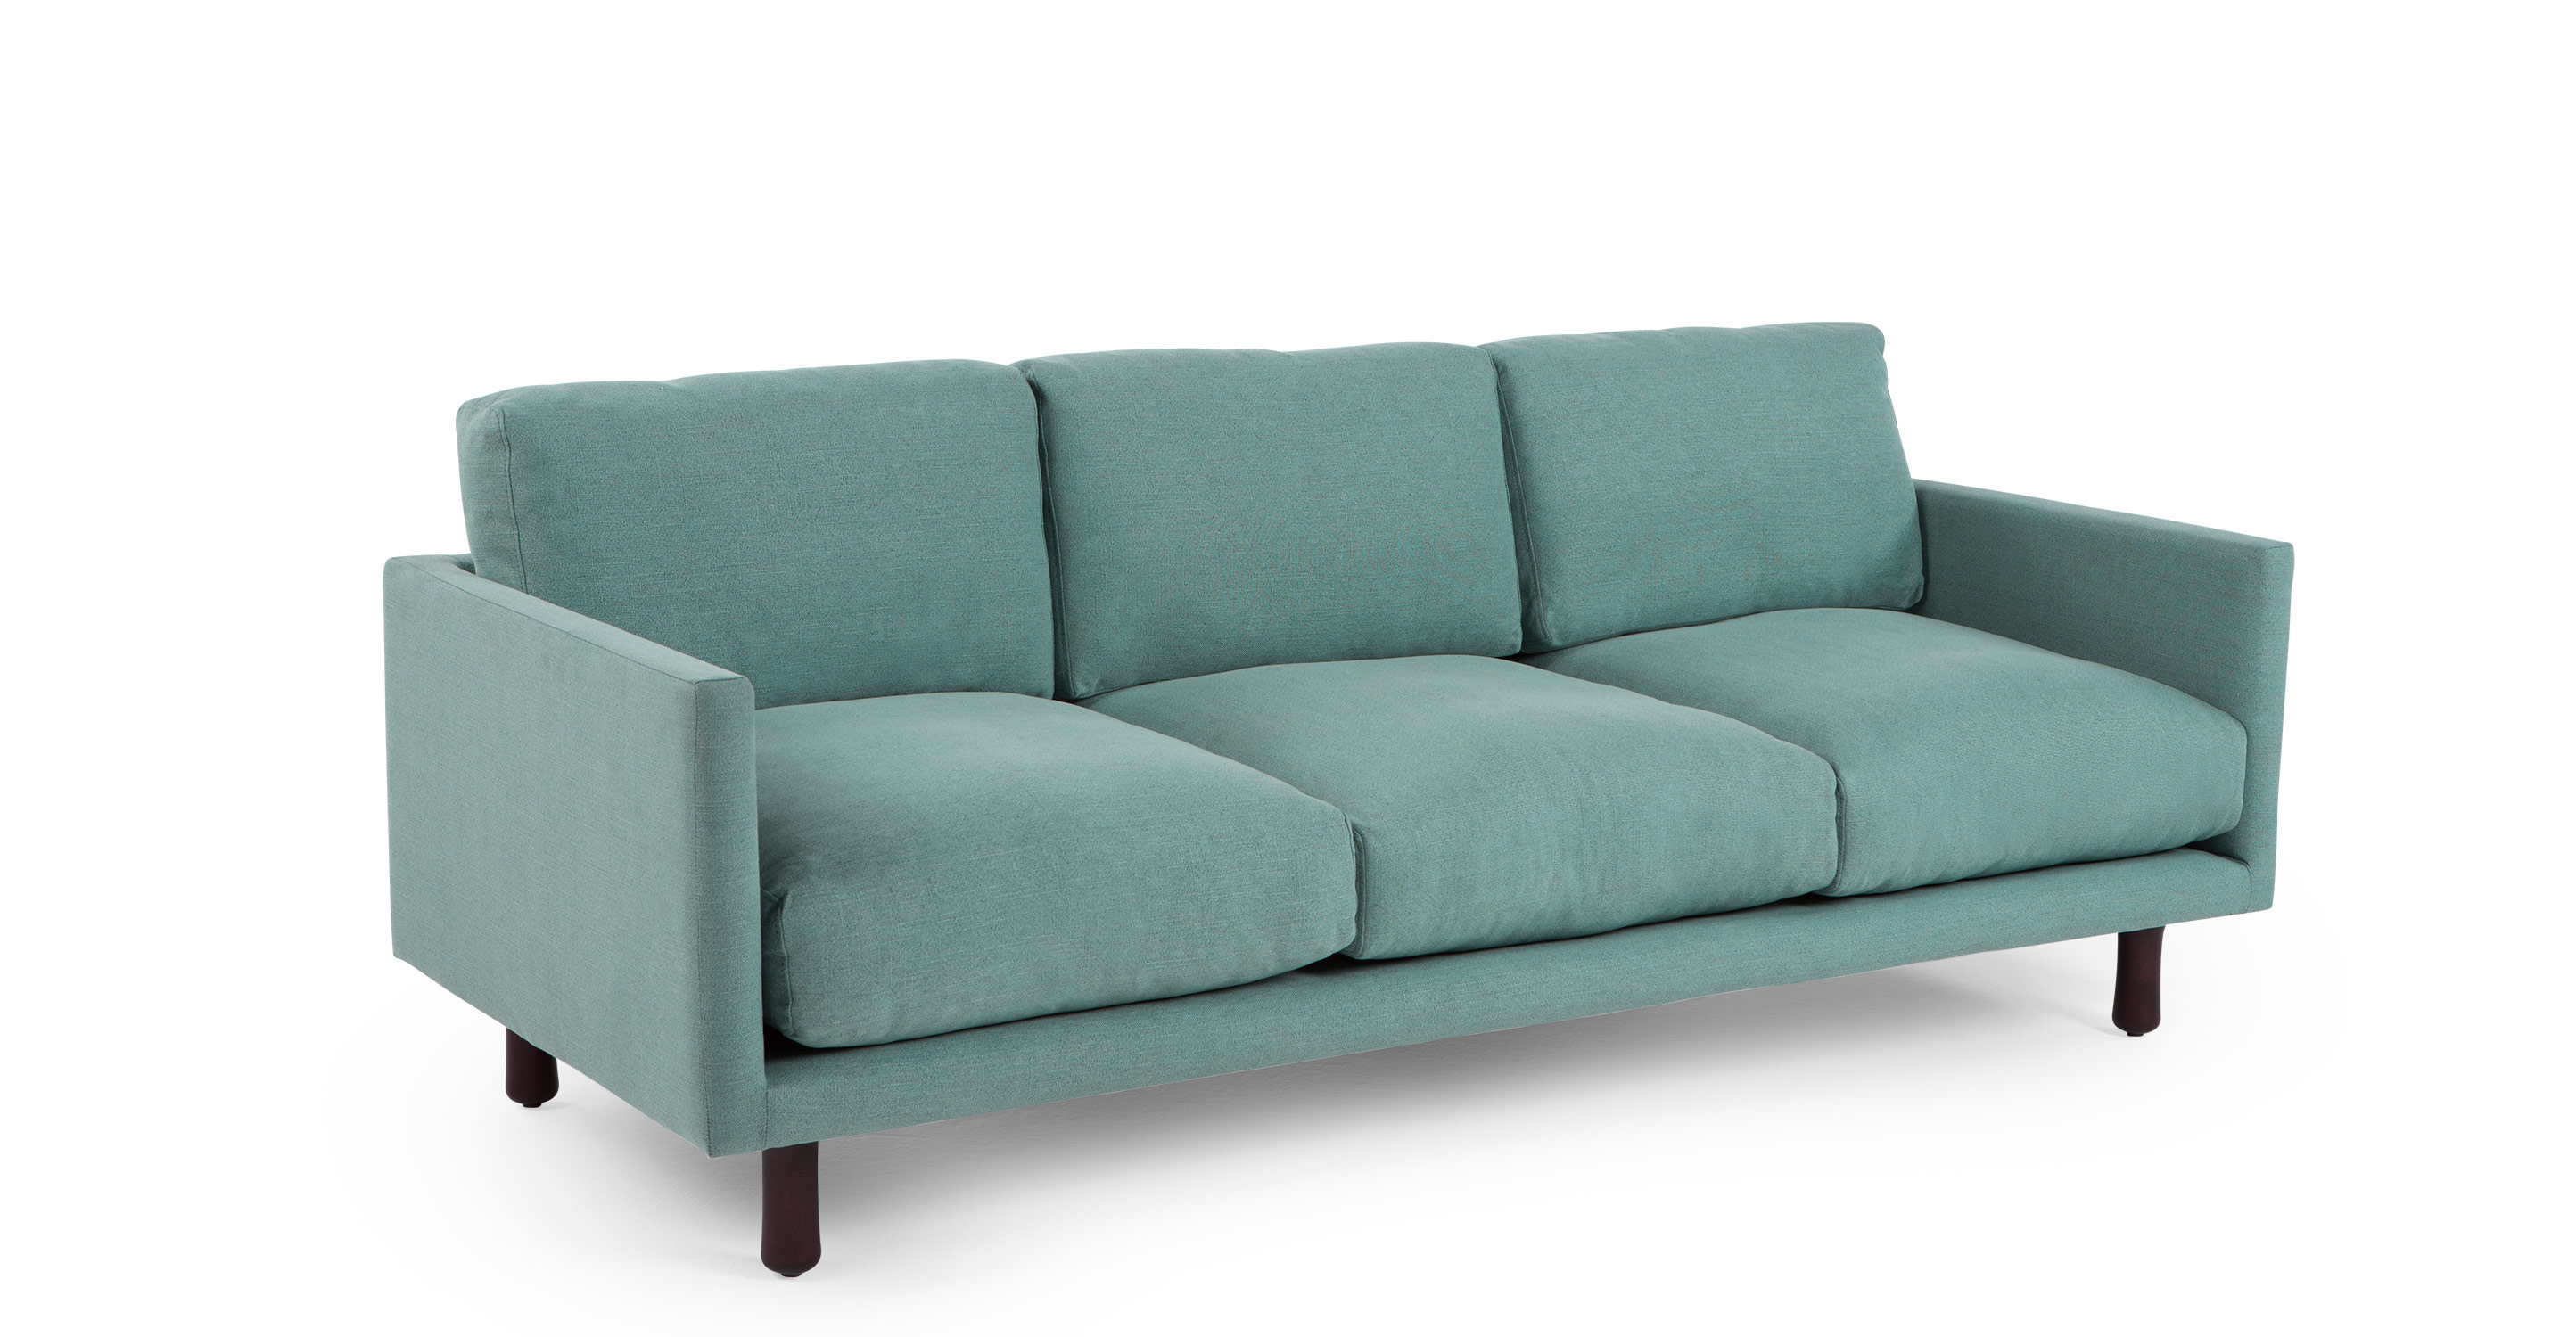 carey 3 seater sofa turquoise linen. Black Bedroom Furniture Sets. Home Design Ideas